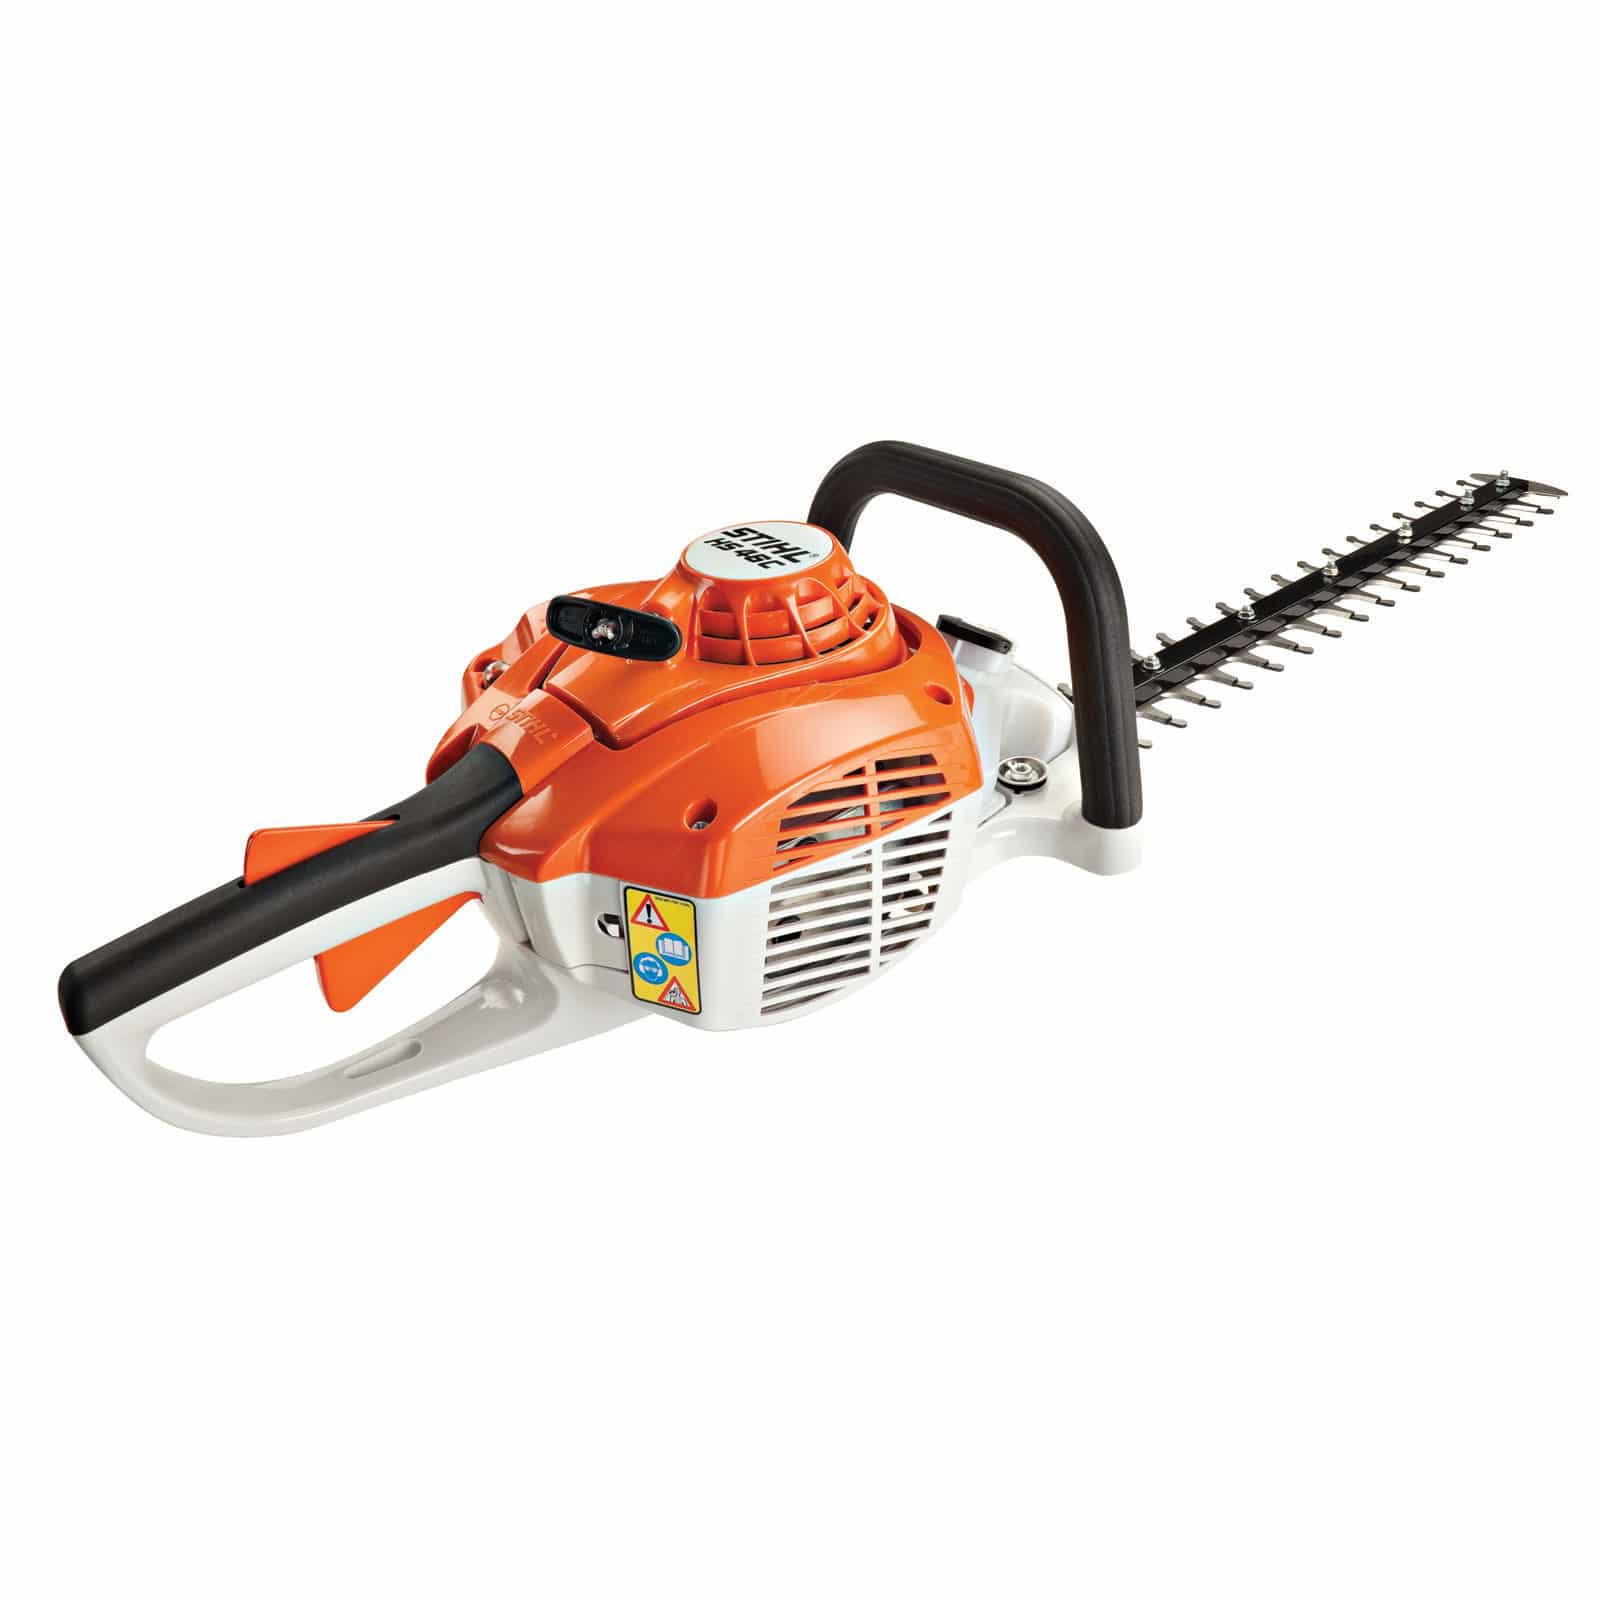 Stihl Hs46c Hedge Trimmer Gas Discount Tool